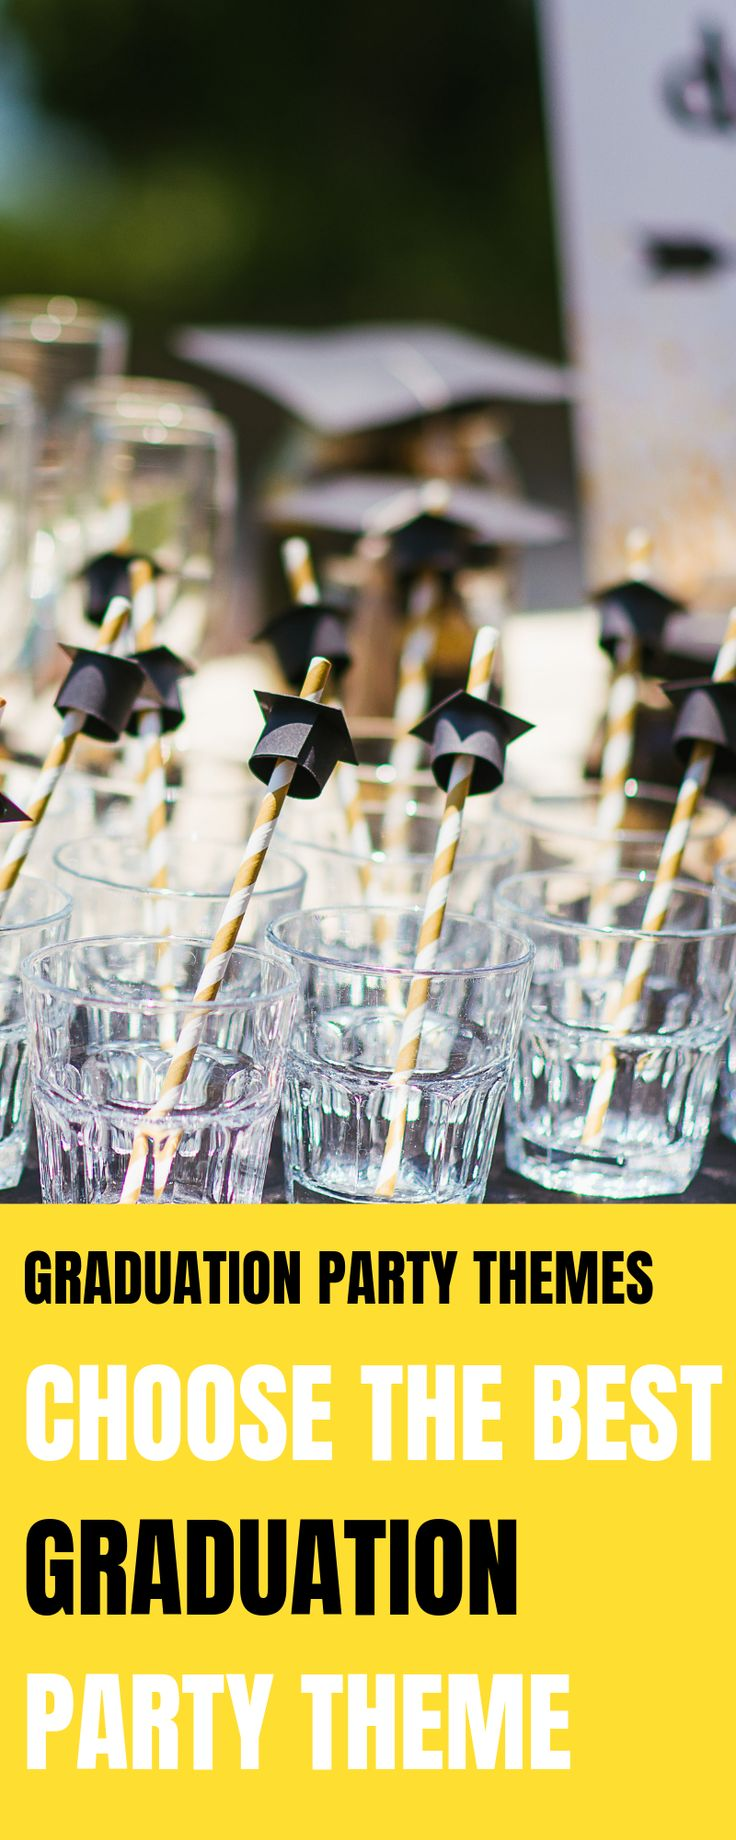 Select The Best Graduation Party Theme For Your 2019 Graduation Party